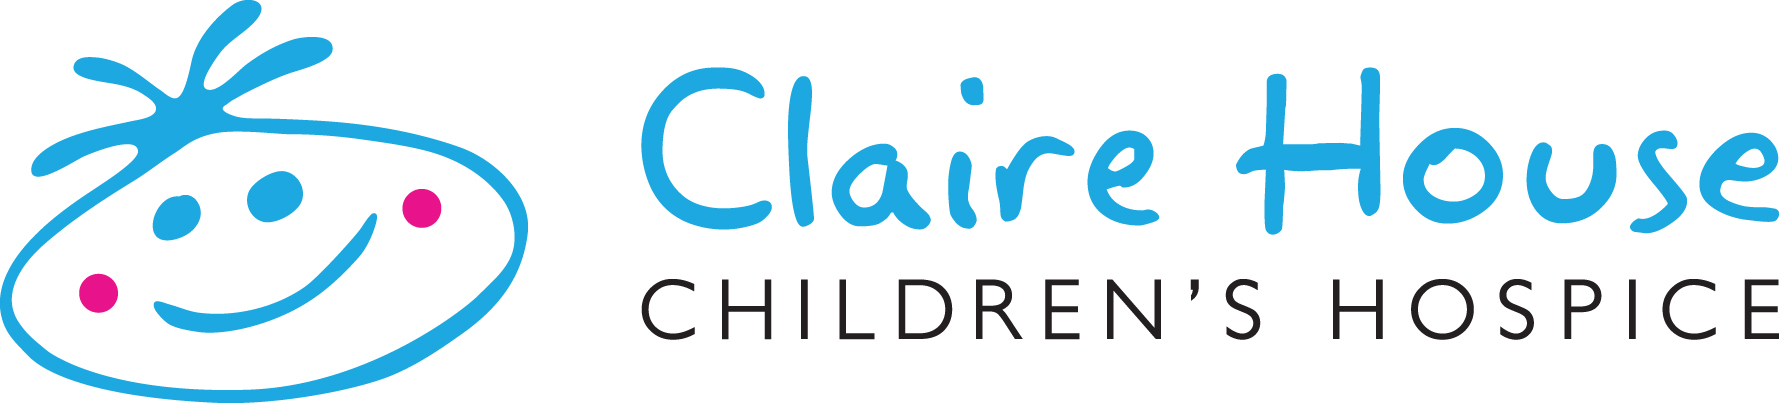 Family support | Claire House Children's Hospice